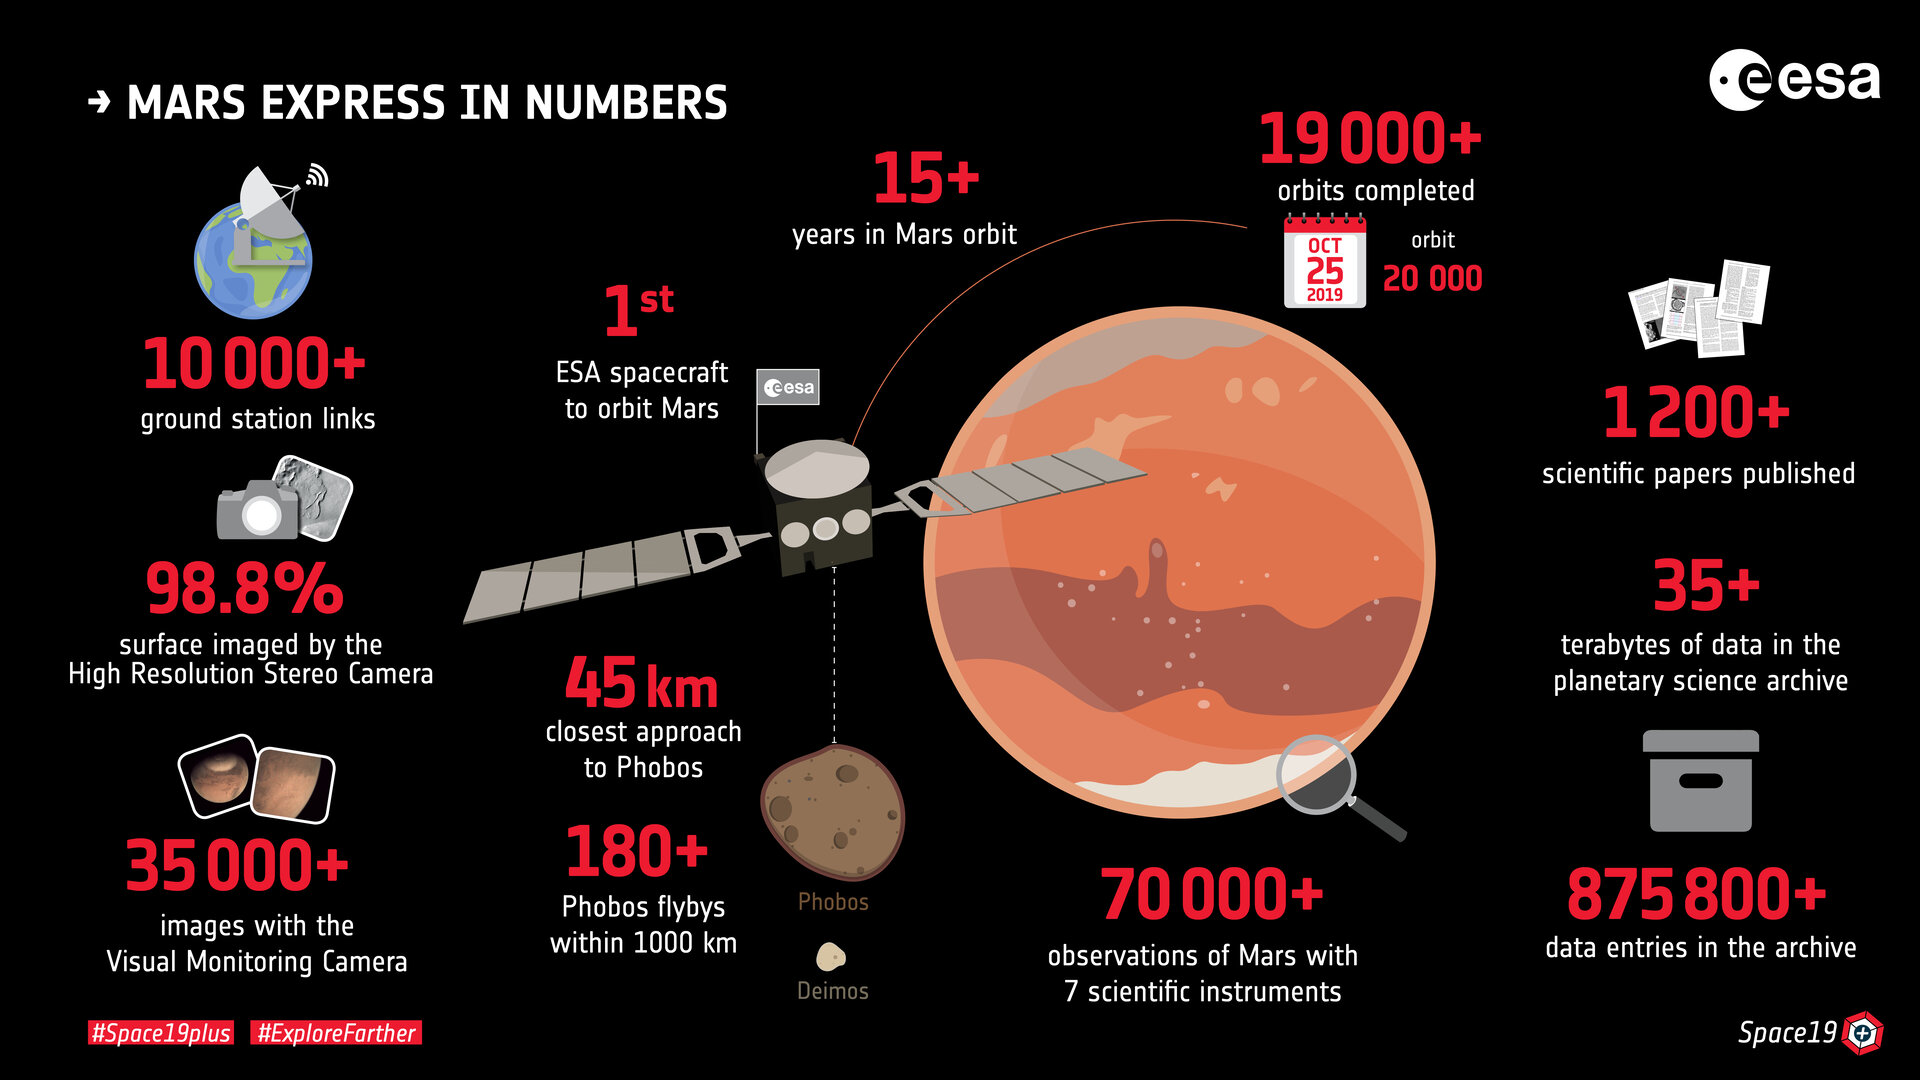 Mars Express in numbers